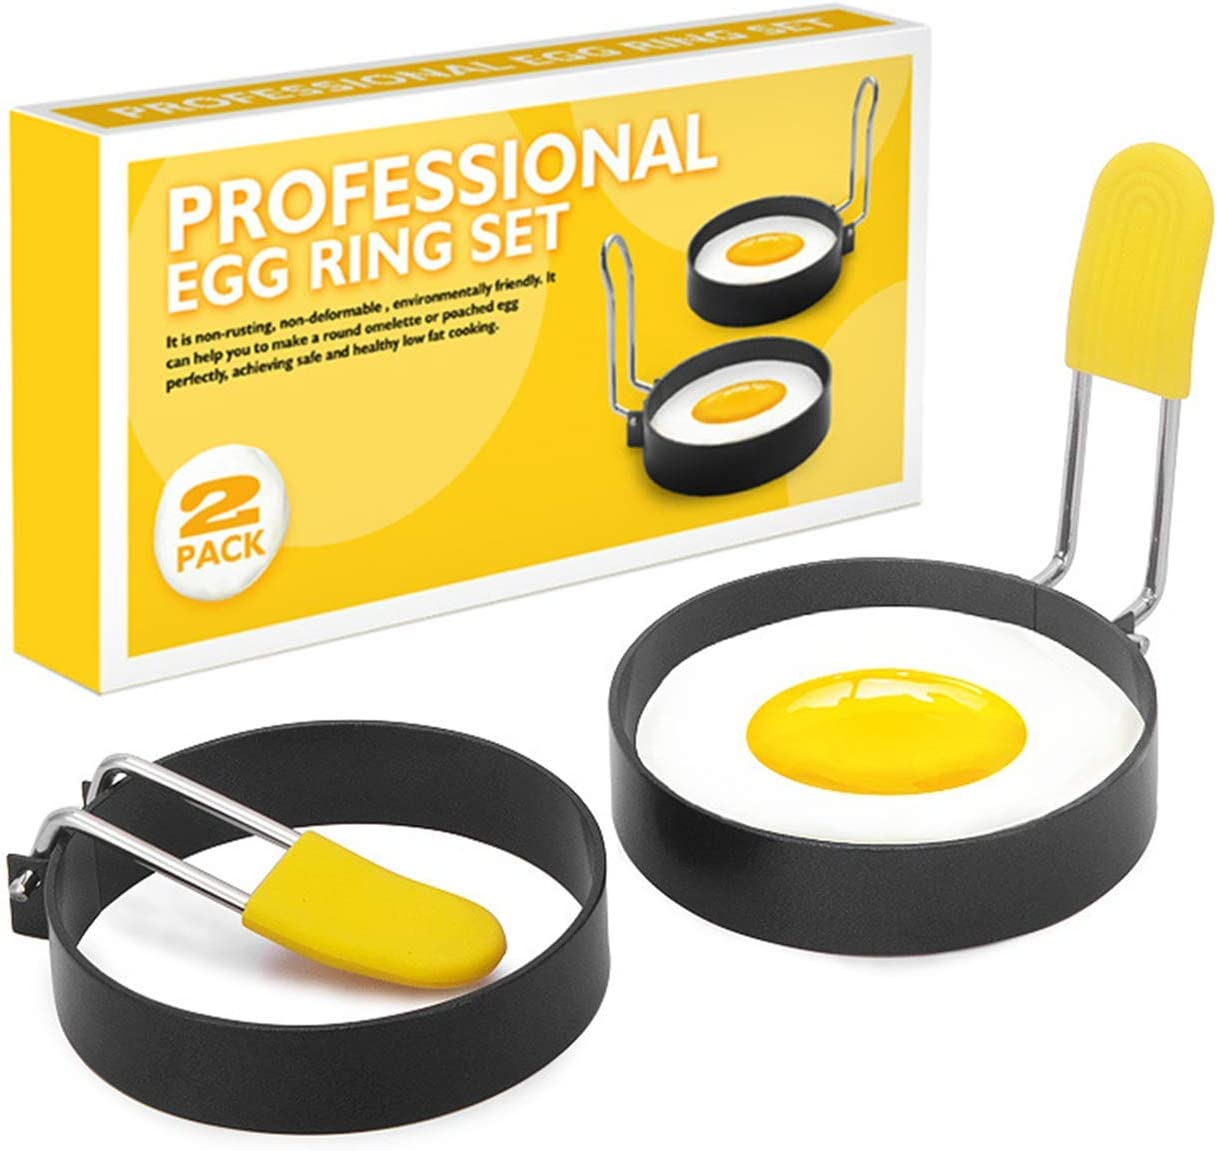 Egg Ring, English Muffin Ring, Egg Molds, Ring Mold for Cooking, Egg Mcmuffin, Flip Cooker, Egg Cookers, Egg Cooking Rings, Round Egg Ring, Stainless Steel Omelet Mold (2 Pack)